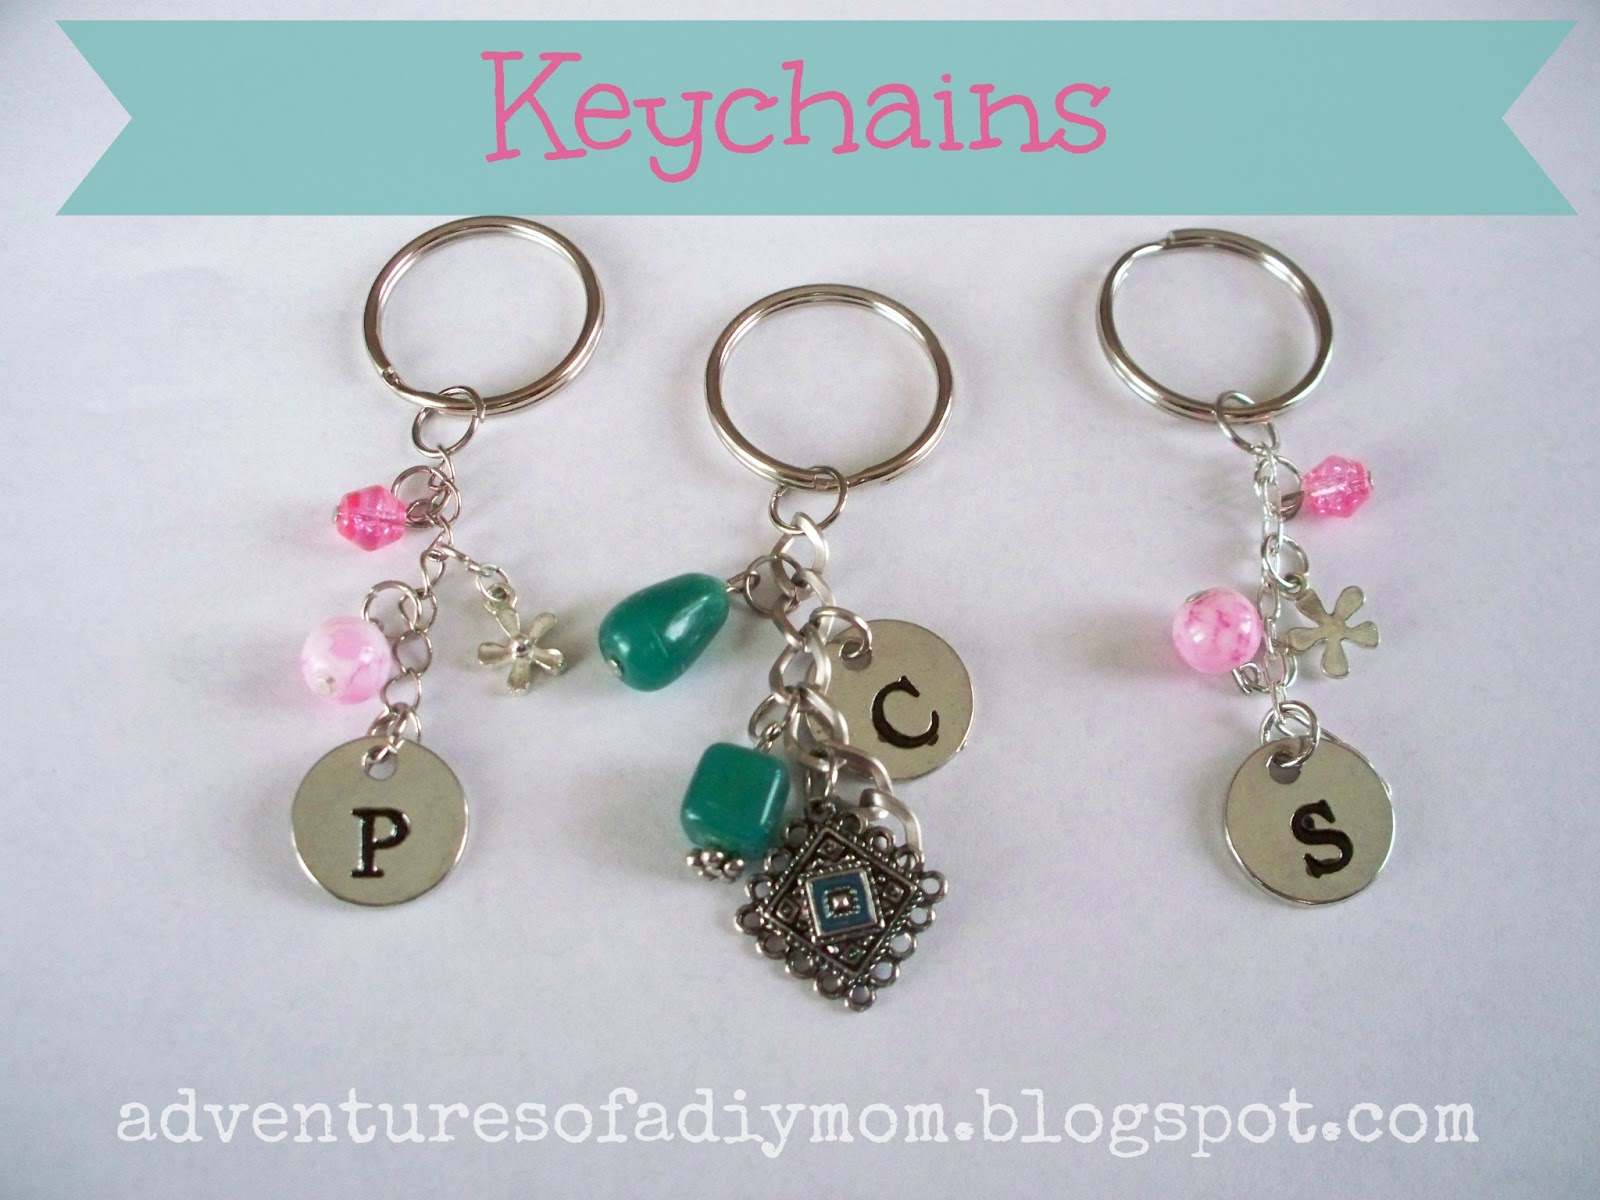 How to Make Your Own Keychains - Adventures of a DIY Mom